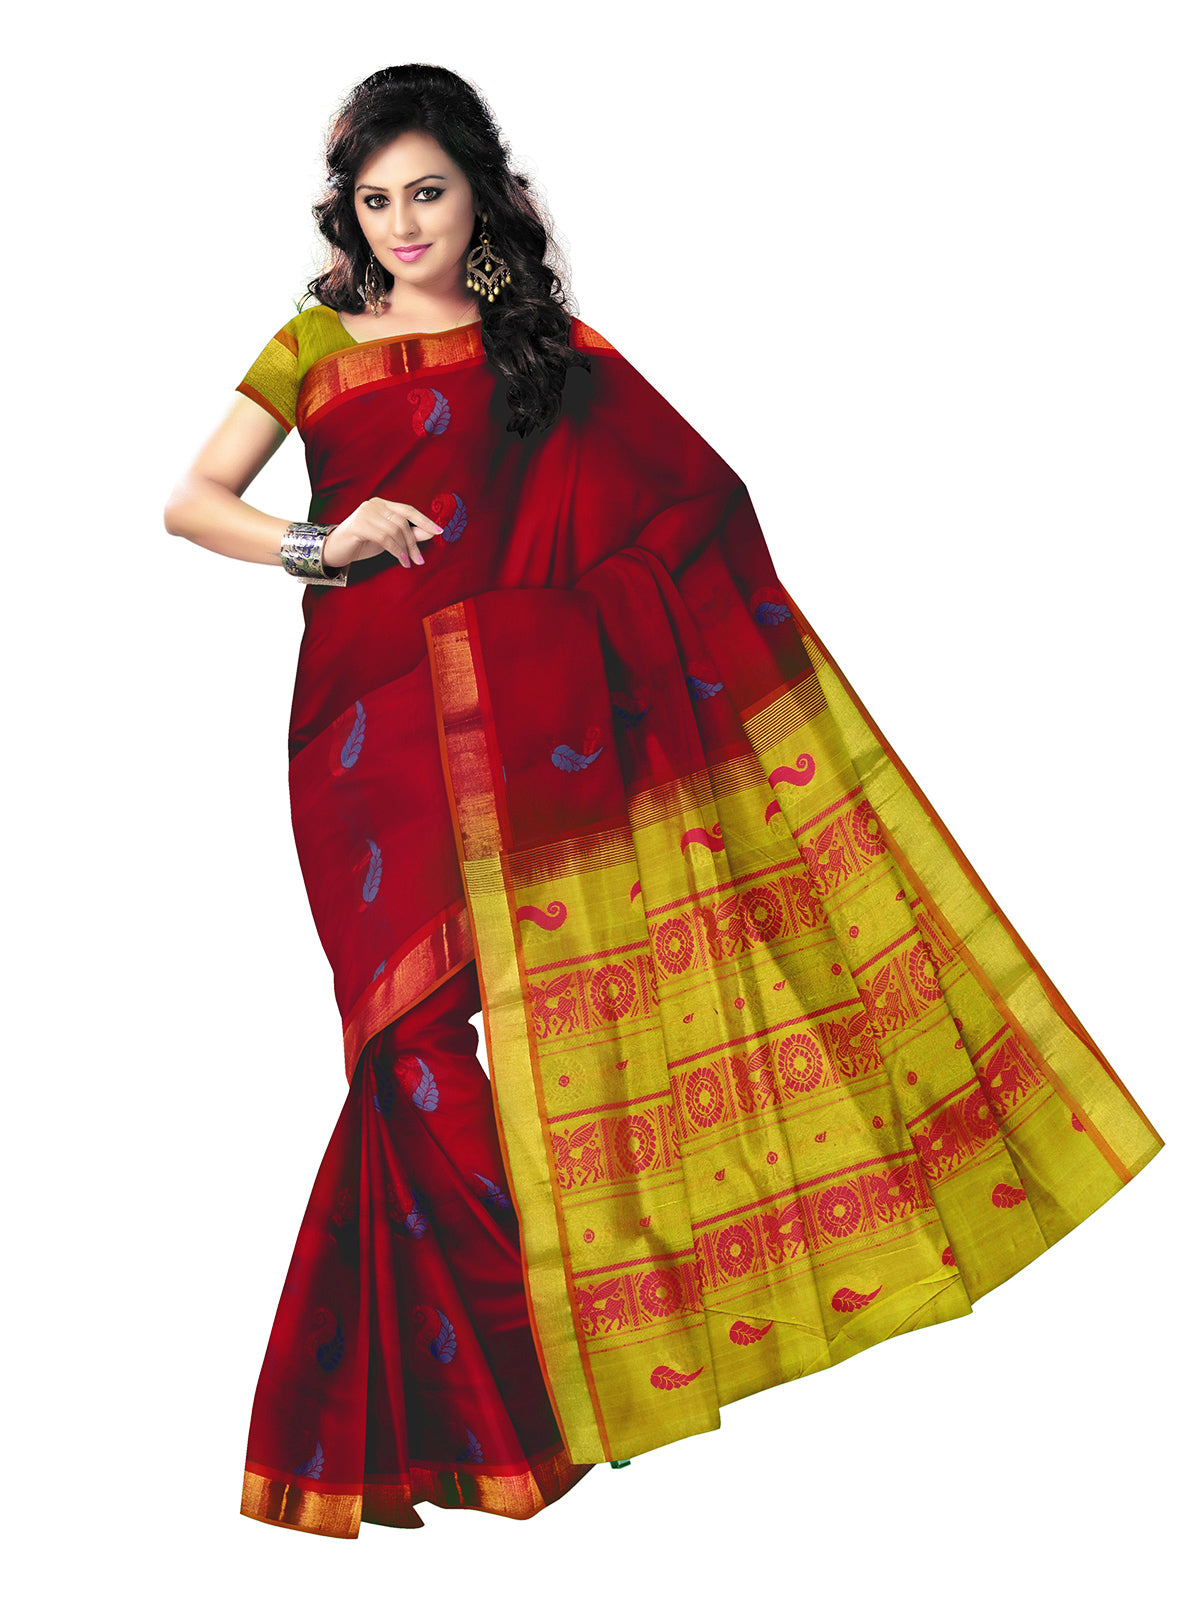 Silk Cotton Saree - Red and Light Mehandi Green with mango butta and simple zari border